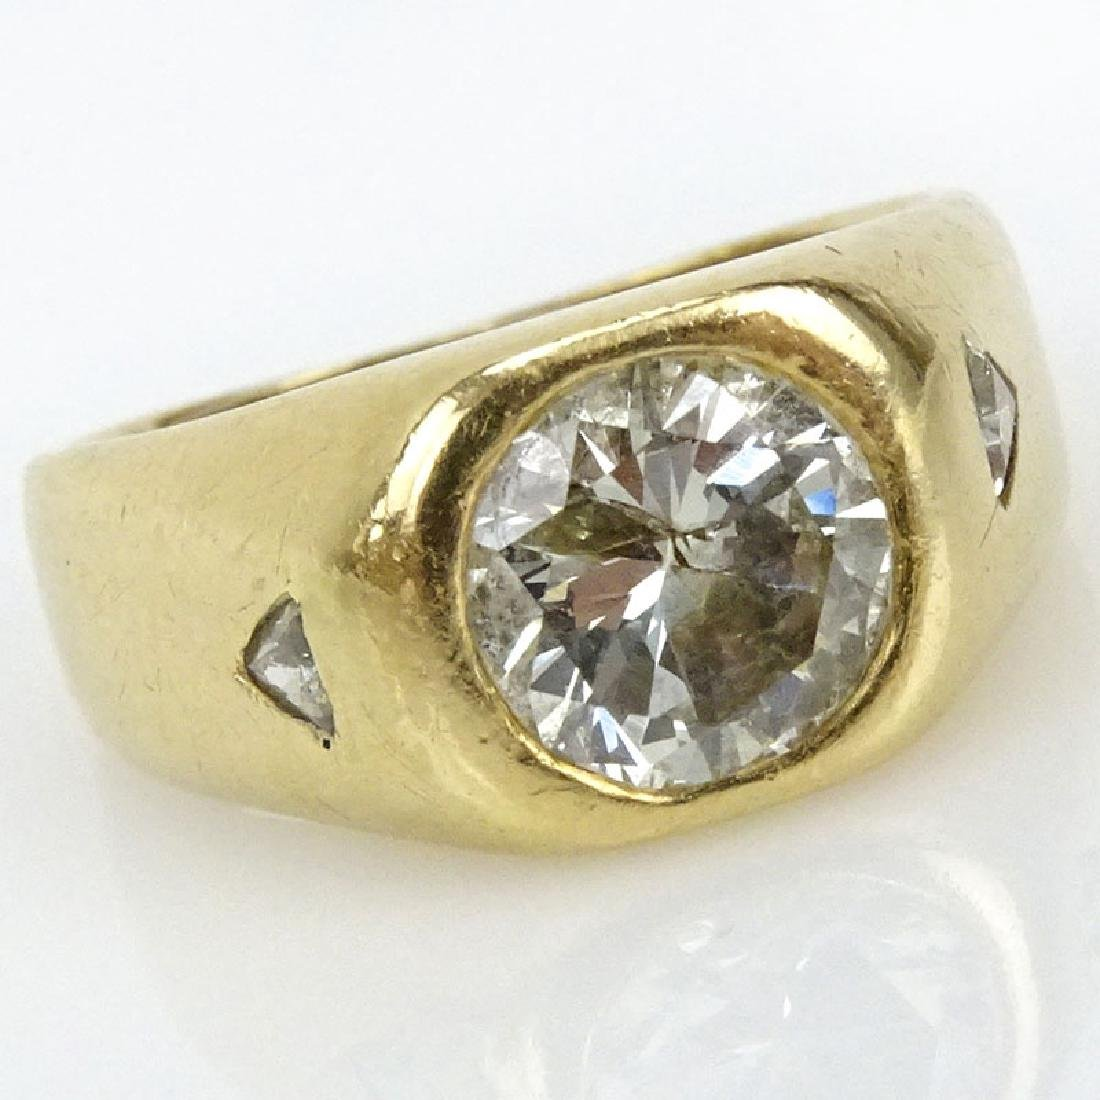 Man's Vintage Approx. 2.45 Carat Old European Cut